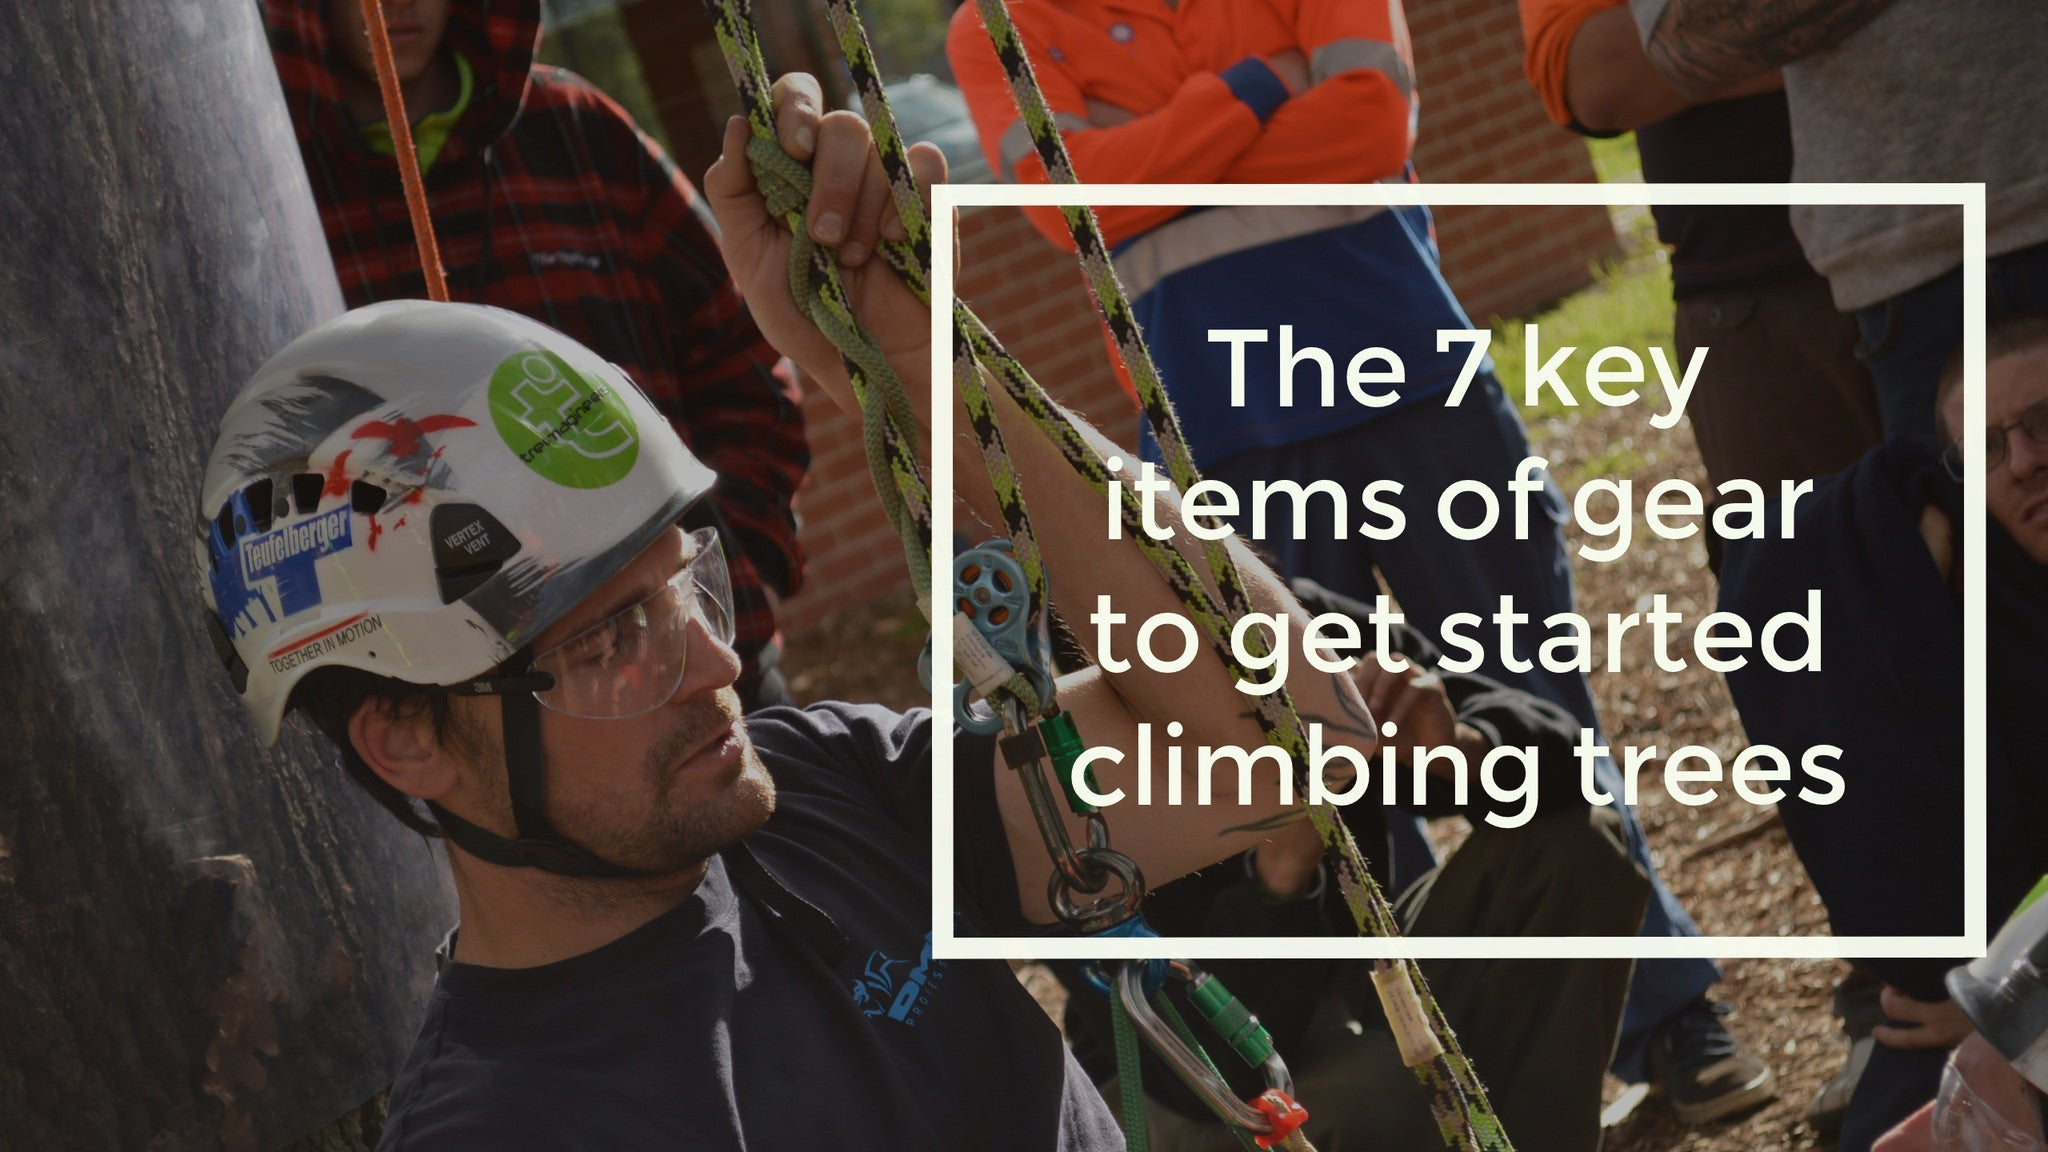 New to Tree Climbing? Here's the 7 key items of gear you need to get